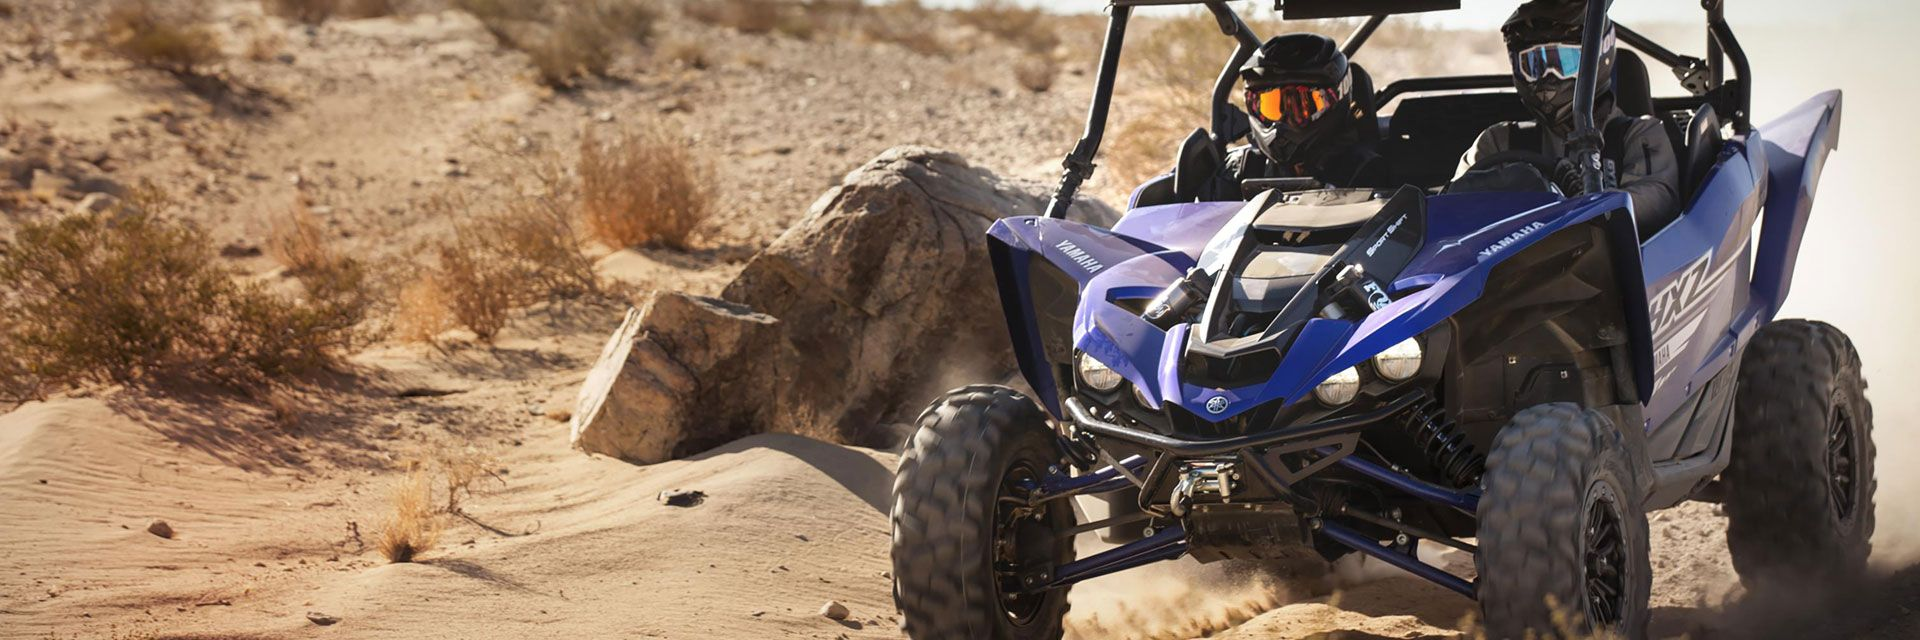 K&N Powersports | Yamaha Dealer, Tulsa OK | Motorcycles, ATVs & More